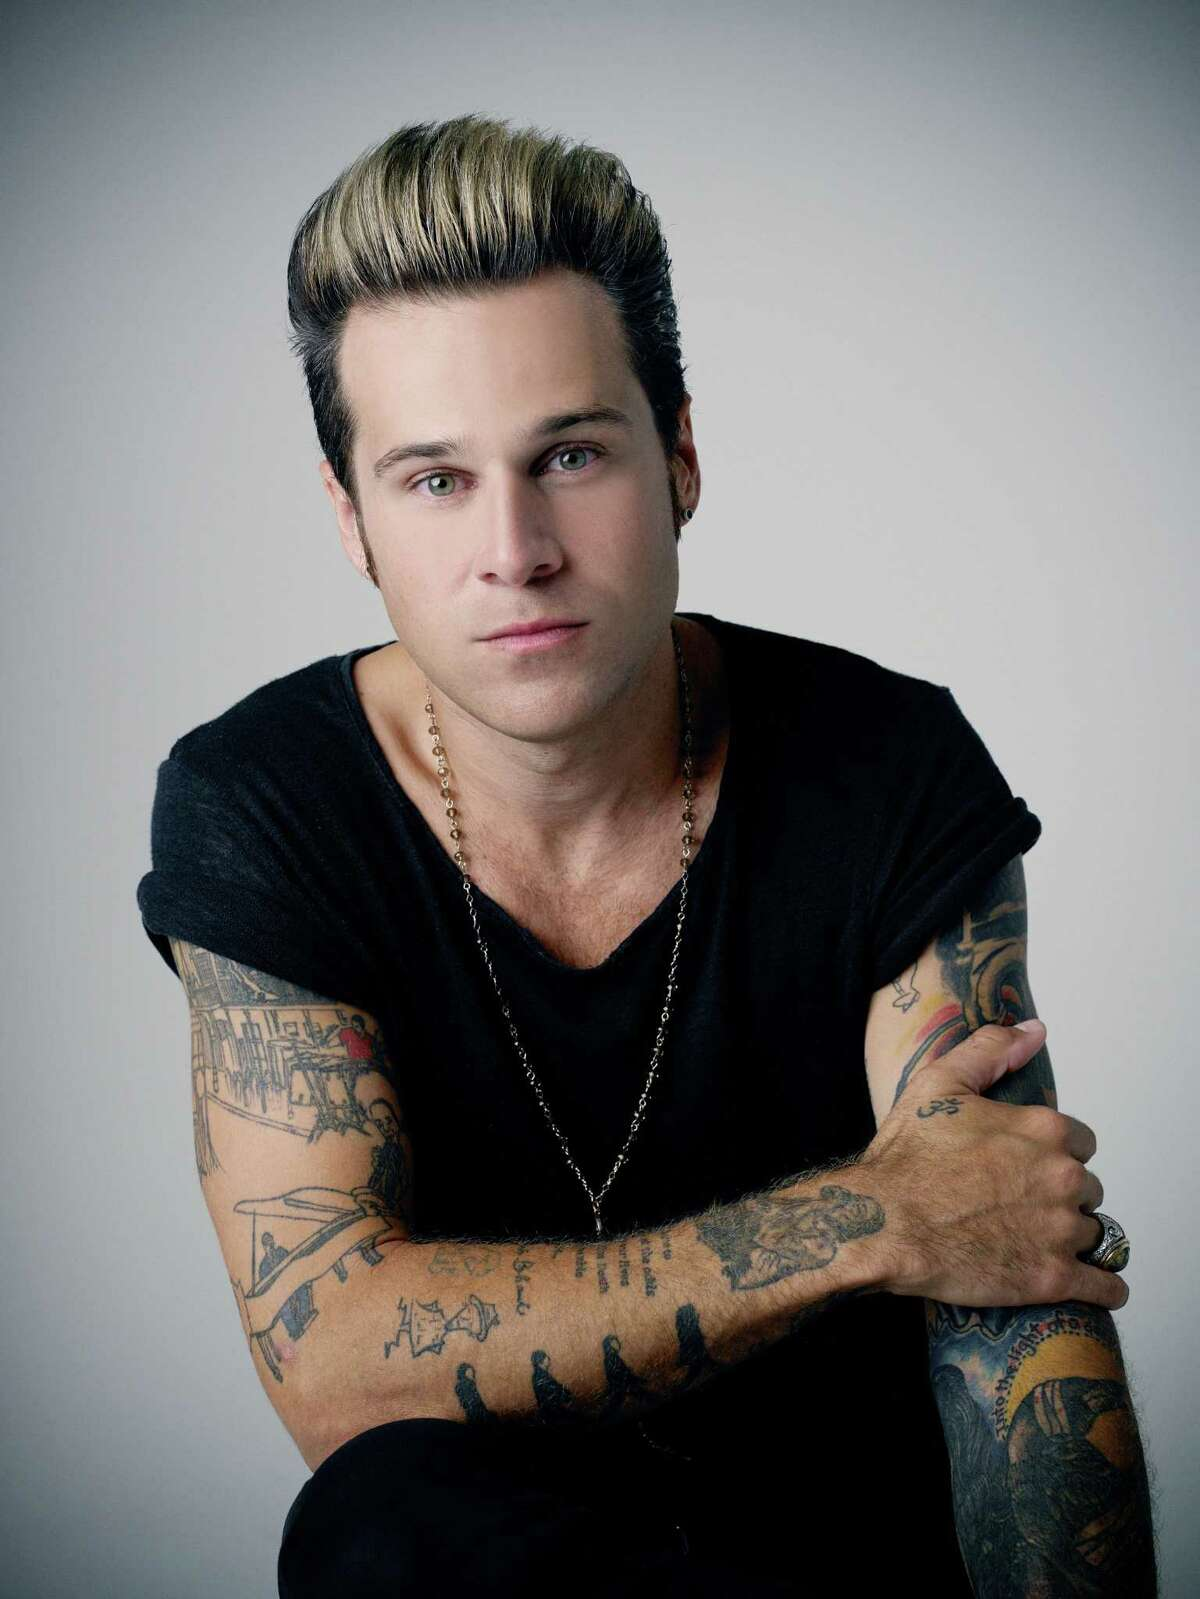 Ryan Cabrera will be among the artists performing when The Pop 2000 Tour, hosted by Lance Bass of *NSYNC, comes to Stamford's Columbus Park as part of the city's Alive@Five music series on July 25. Also performing will be O-Town, Aaron Carter and Tyler Hilton.